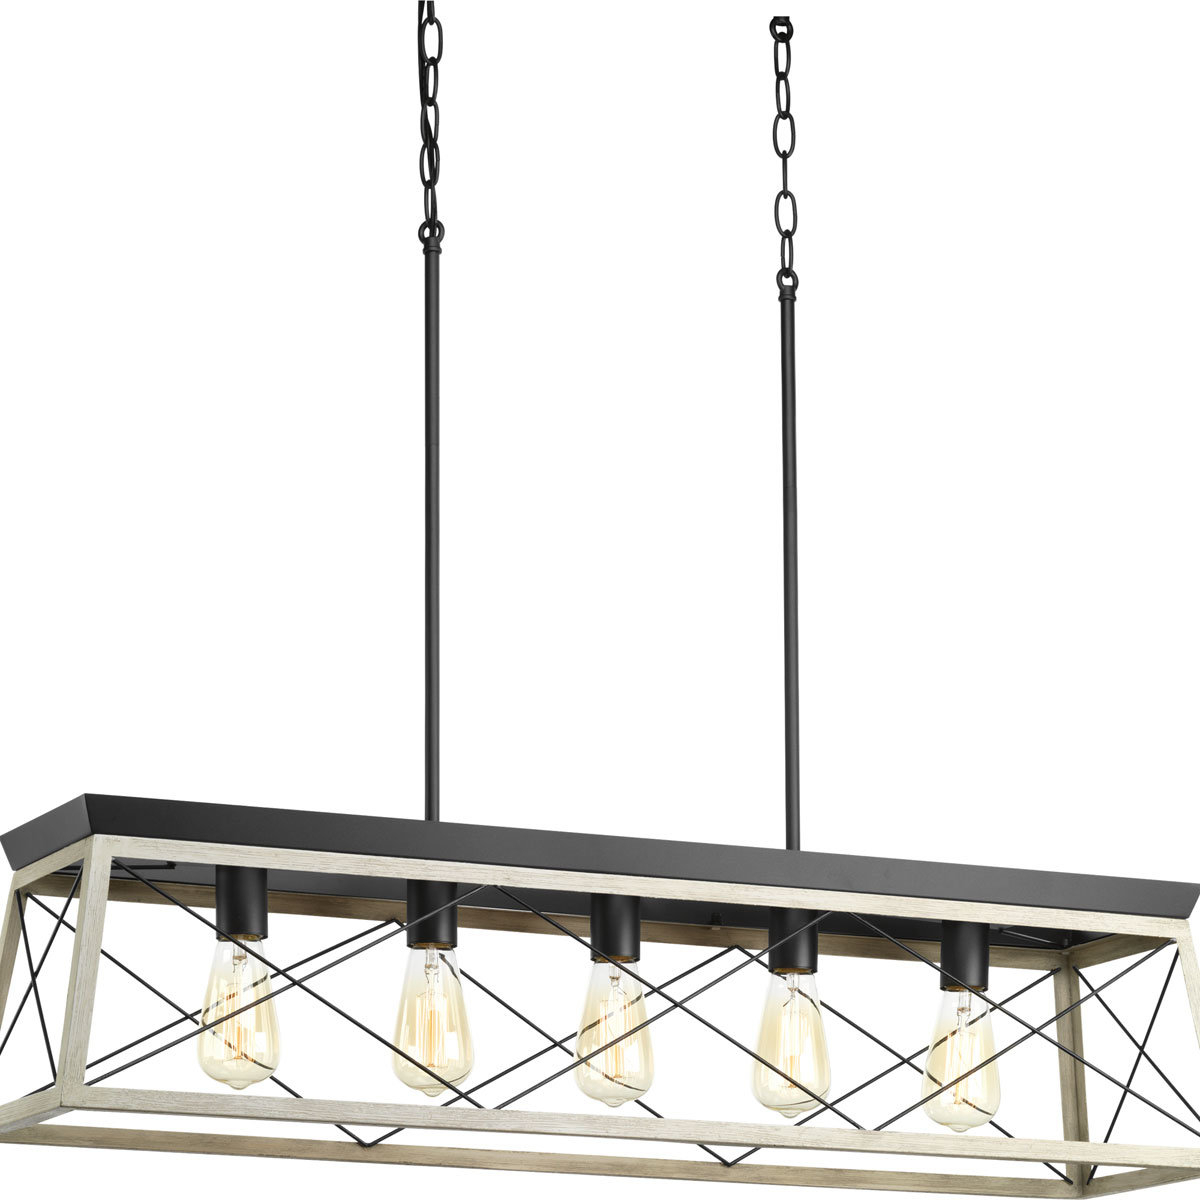 Delon 5 Light Kitchen Island Linear Pendant Intended For Sousa 4 Light Kitchen Island Linear Pendants (Photo 24 of 30)